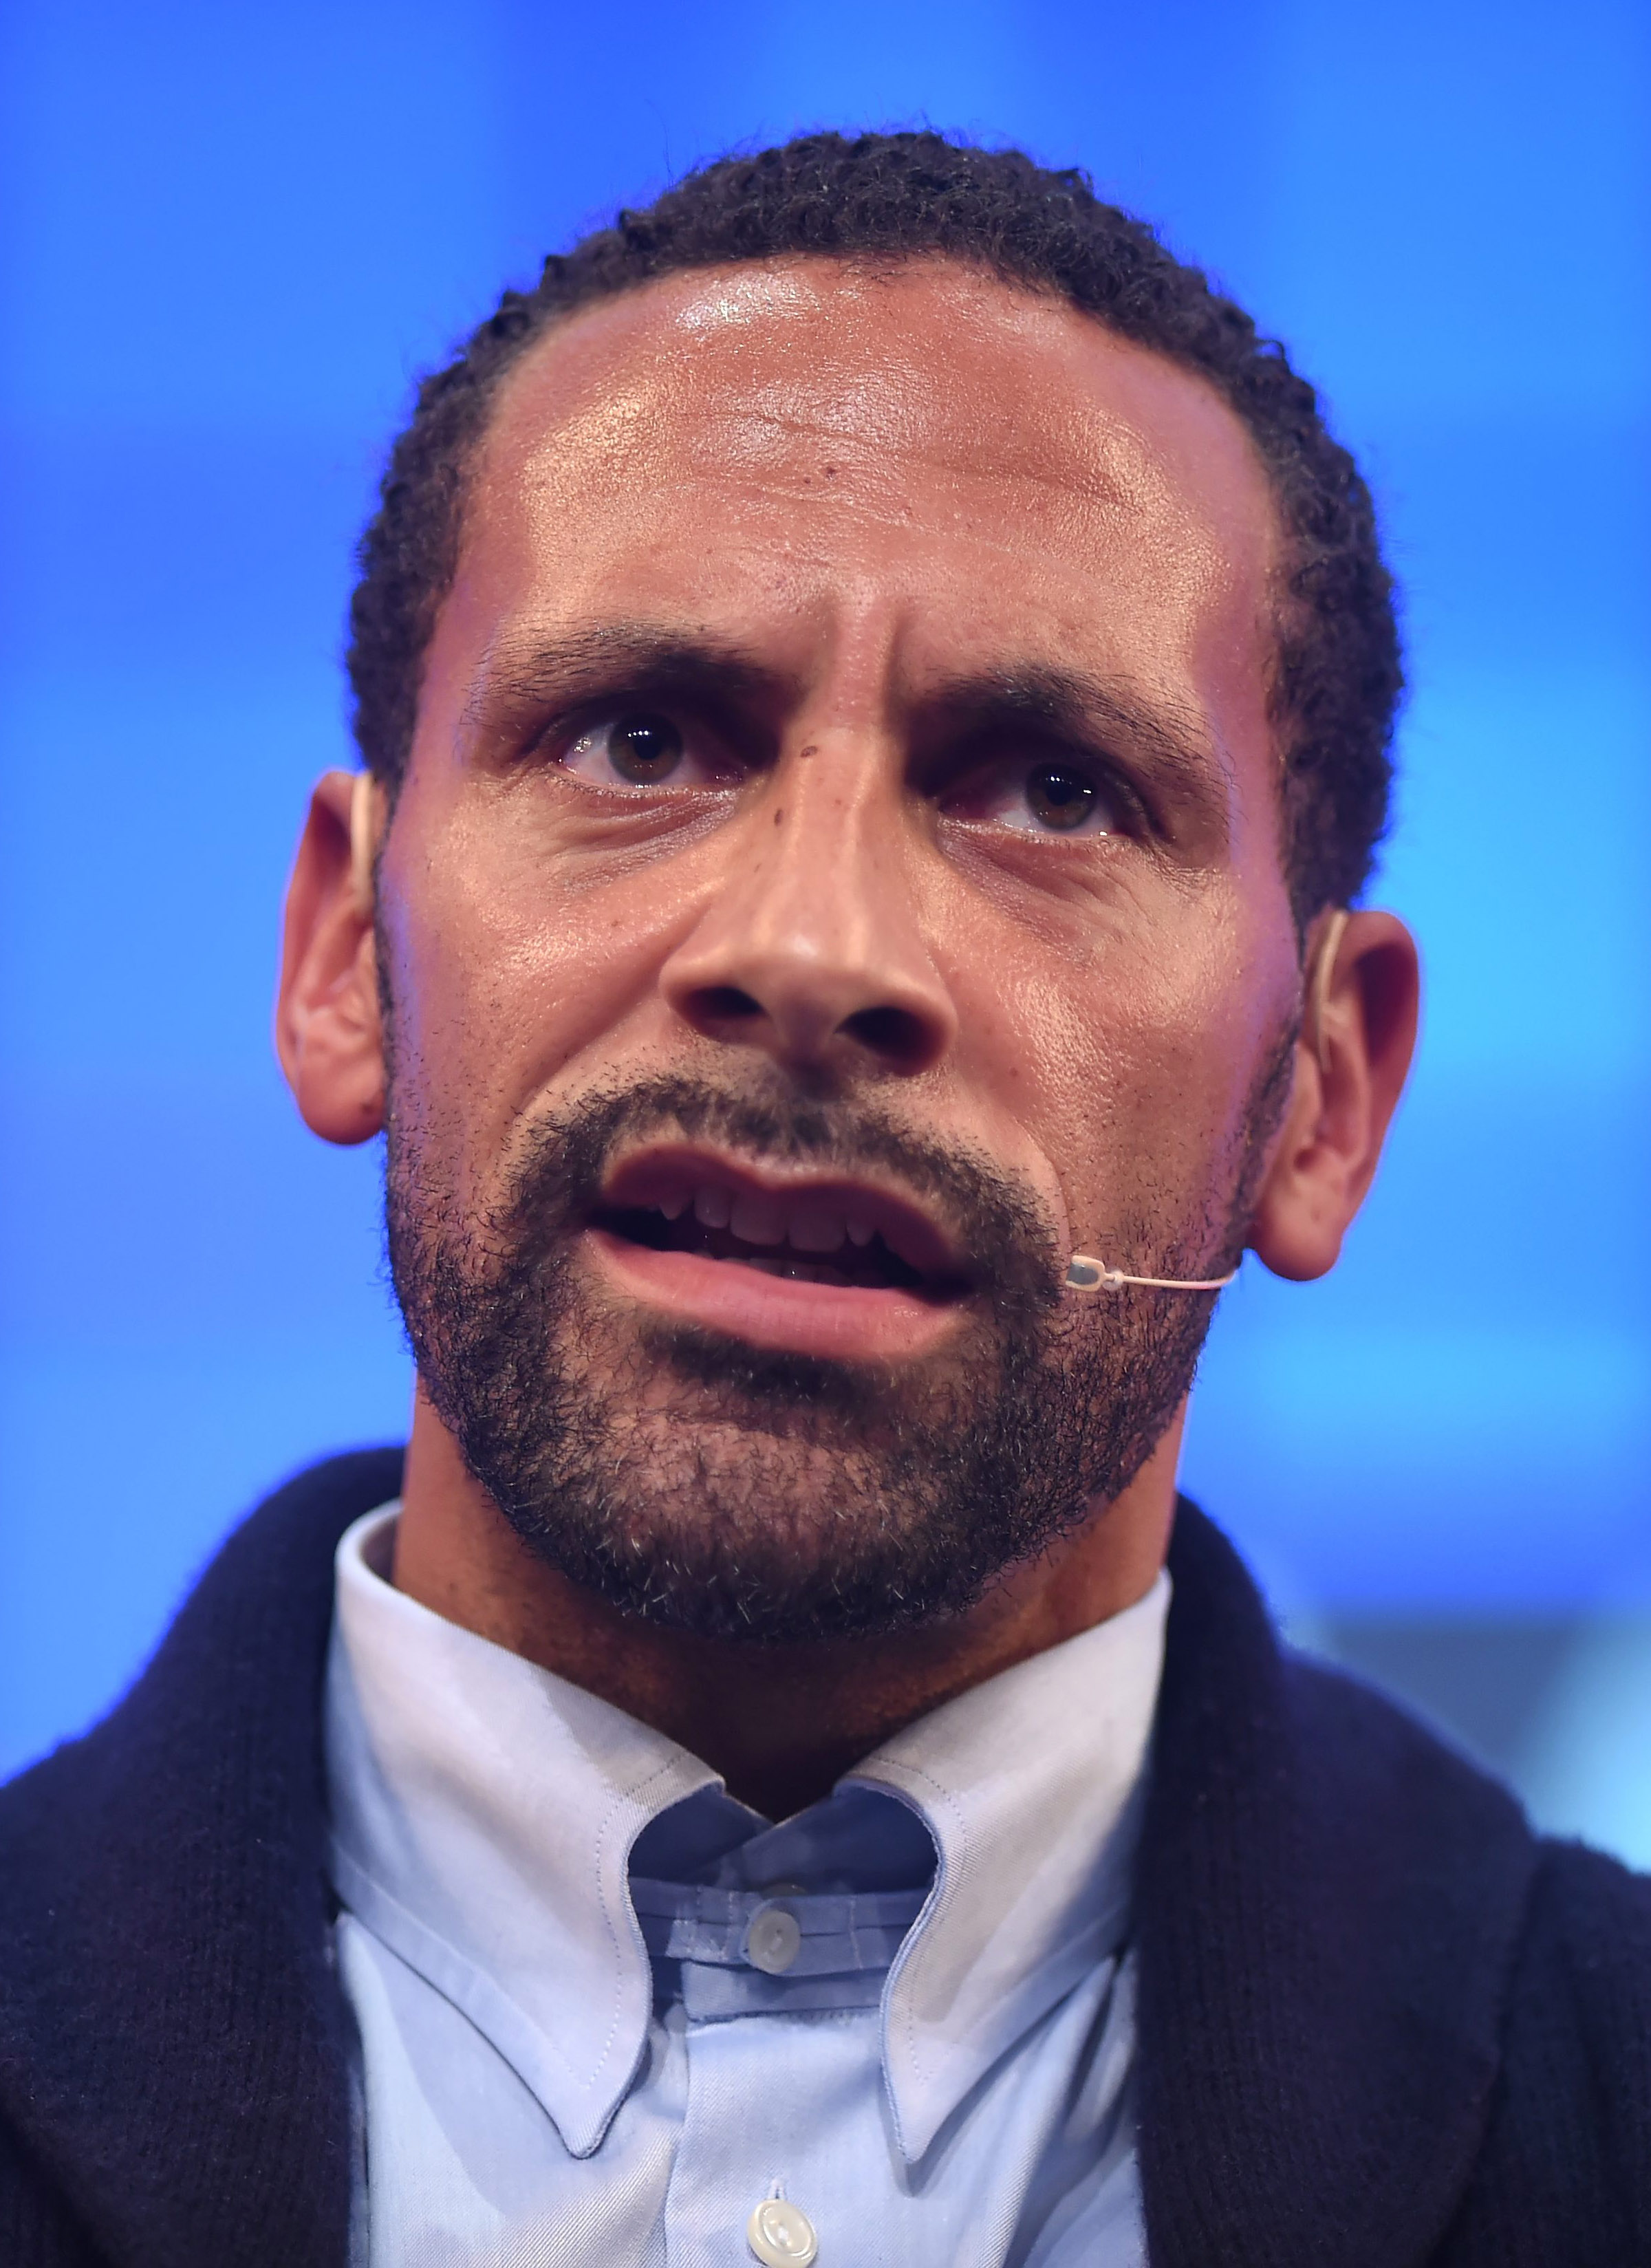 The 42-year old son of father Julian Ferdinand and mother Janice Lavender  Rio Ferdinand in 2021 photo. Rio Ferdinand earned a  million dollar salary - leaving the net worth at 75 million in 2021